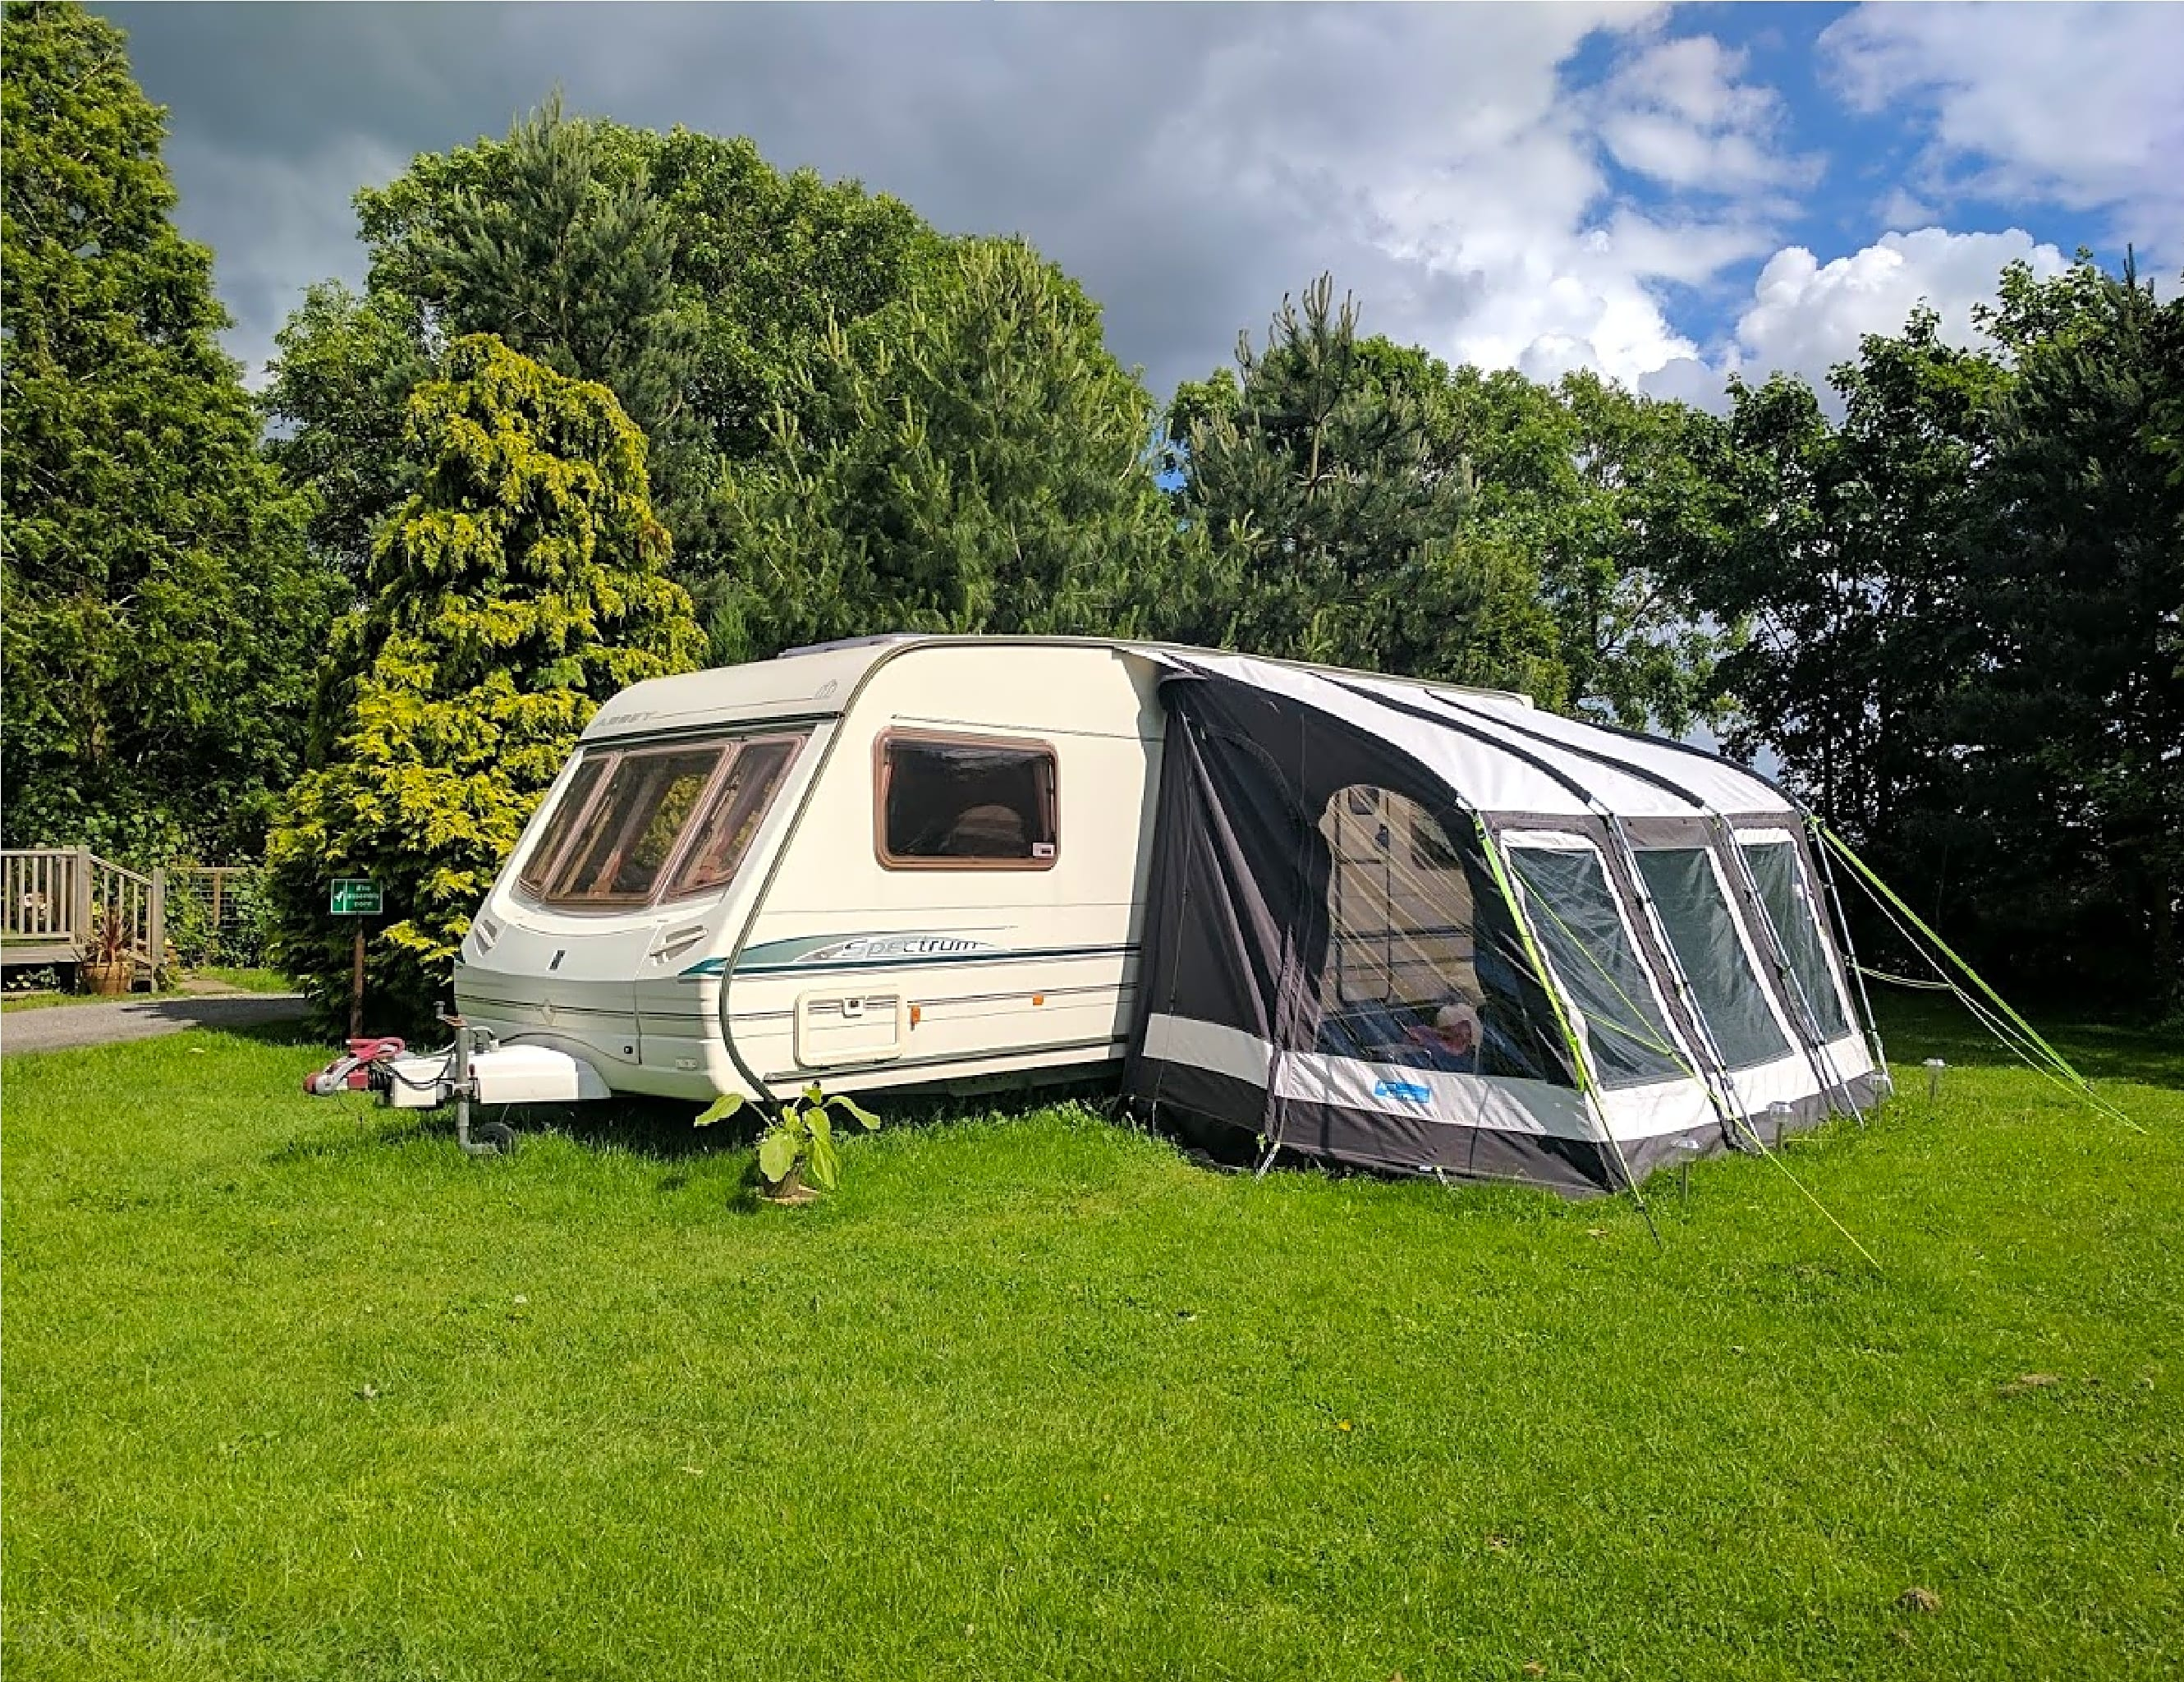 Kantankye Scout Campsite, Skegness - Updated 2019 prices